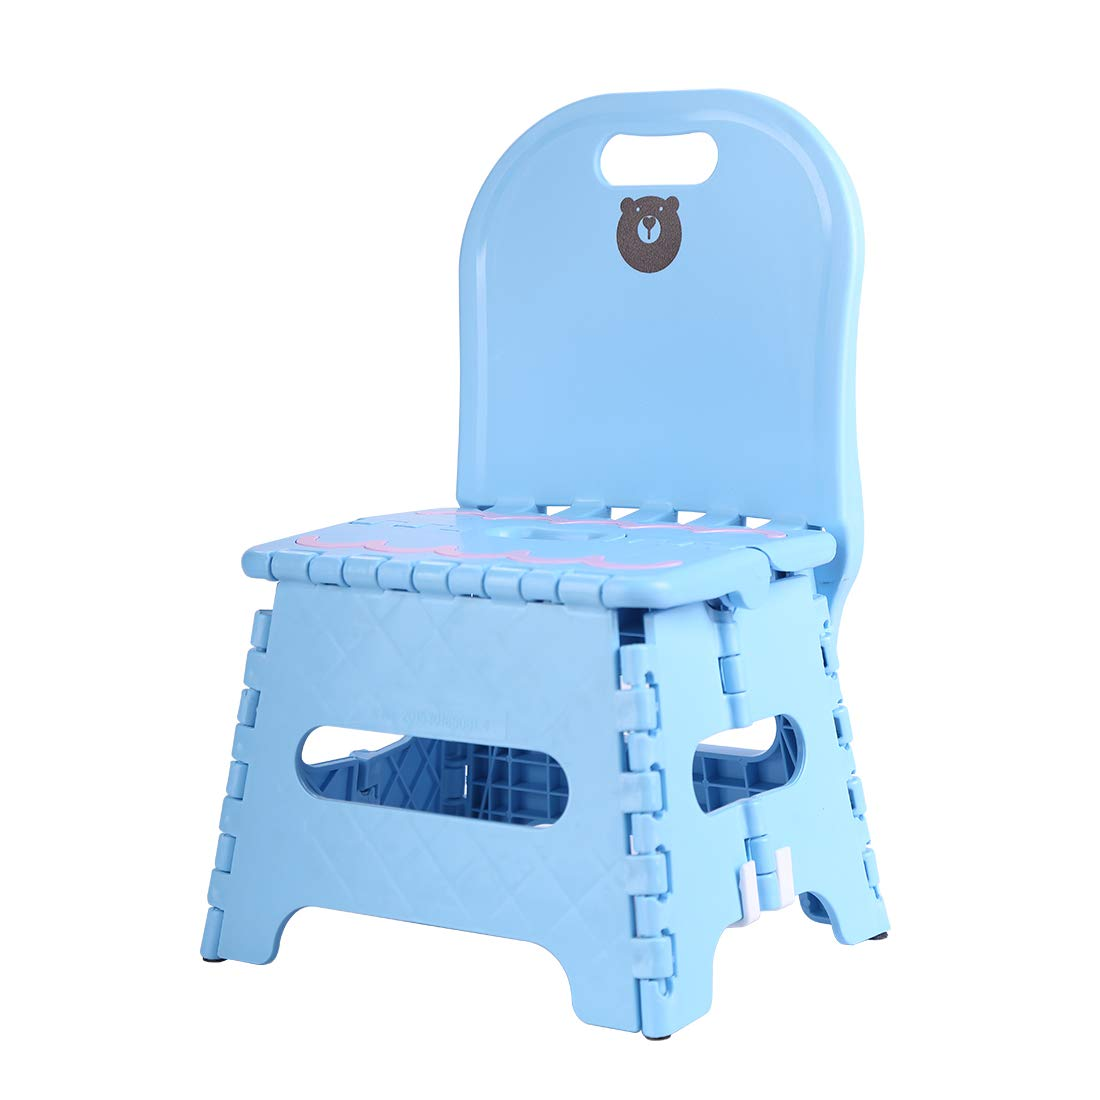 ZDZDZ Cute Travel Portable Non Slip Folding Step Stool with Backrest For Kids Adults Kitchen Garden Bathroom Heavy Duty Outdoor Foldable Stool Holds up to 250 LBS blue